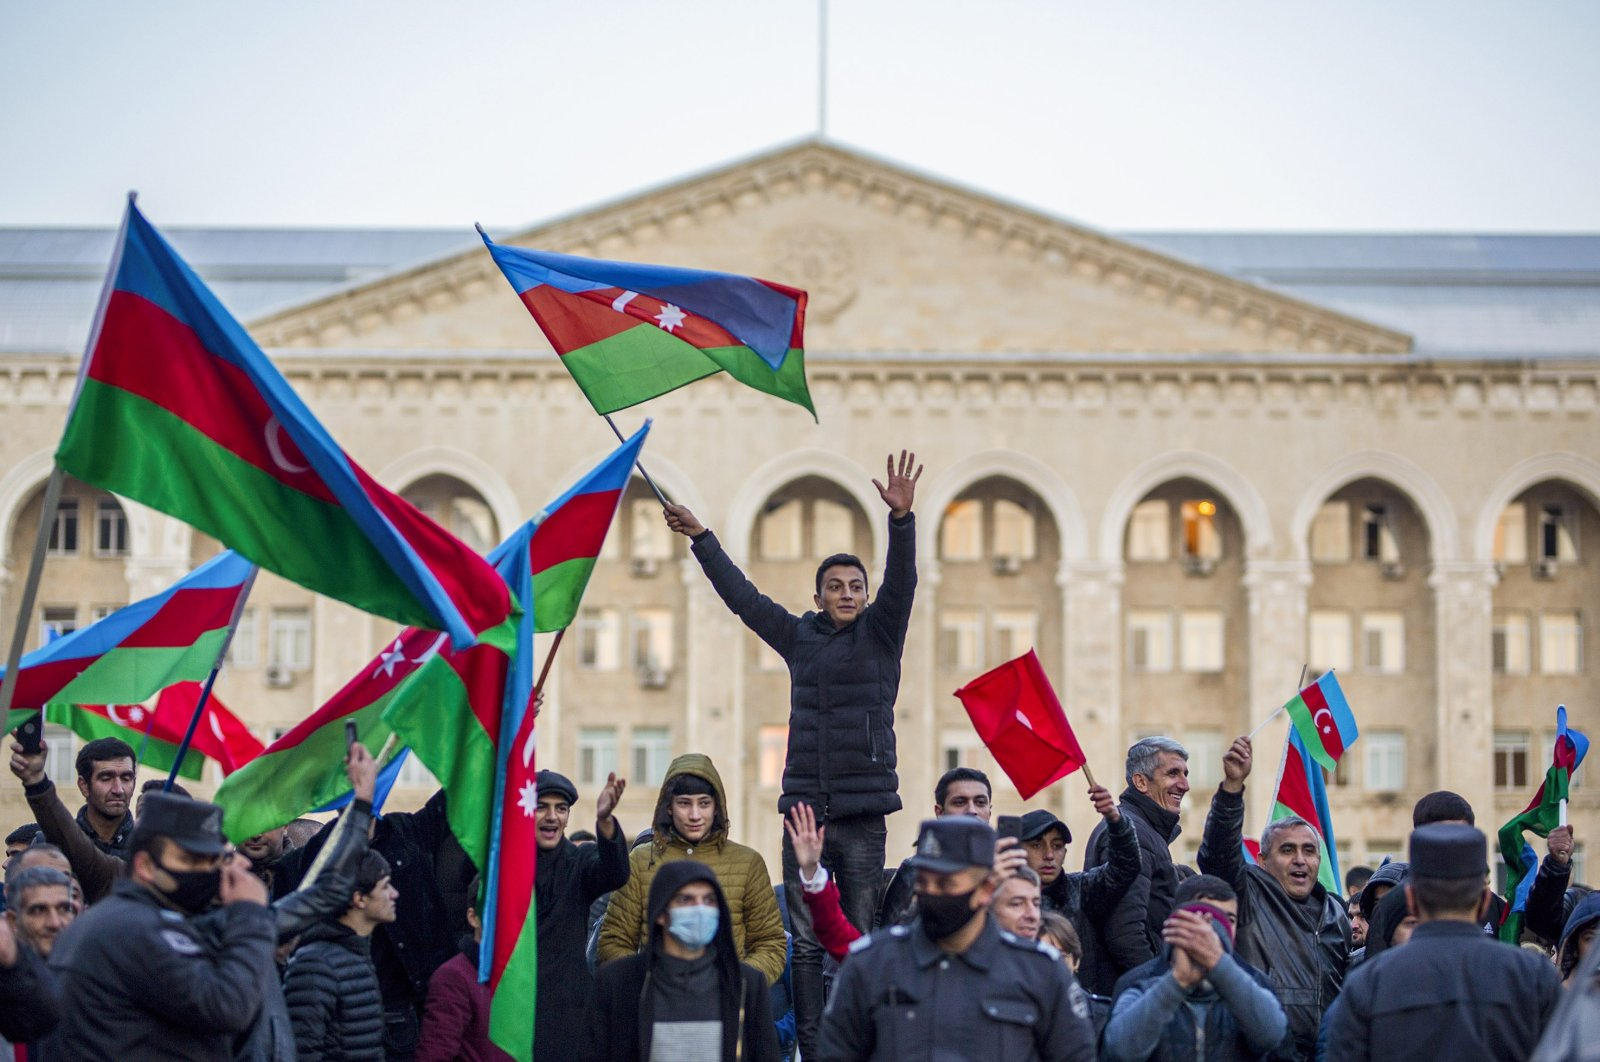 Azerbaijani citizens celebrate the peace deal that is expected to end the 30 yearlong Armenian occupation of Nagorno-Karabakh on Tuesday, Nov. 10, 2020 (AA Photo)